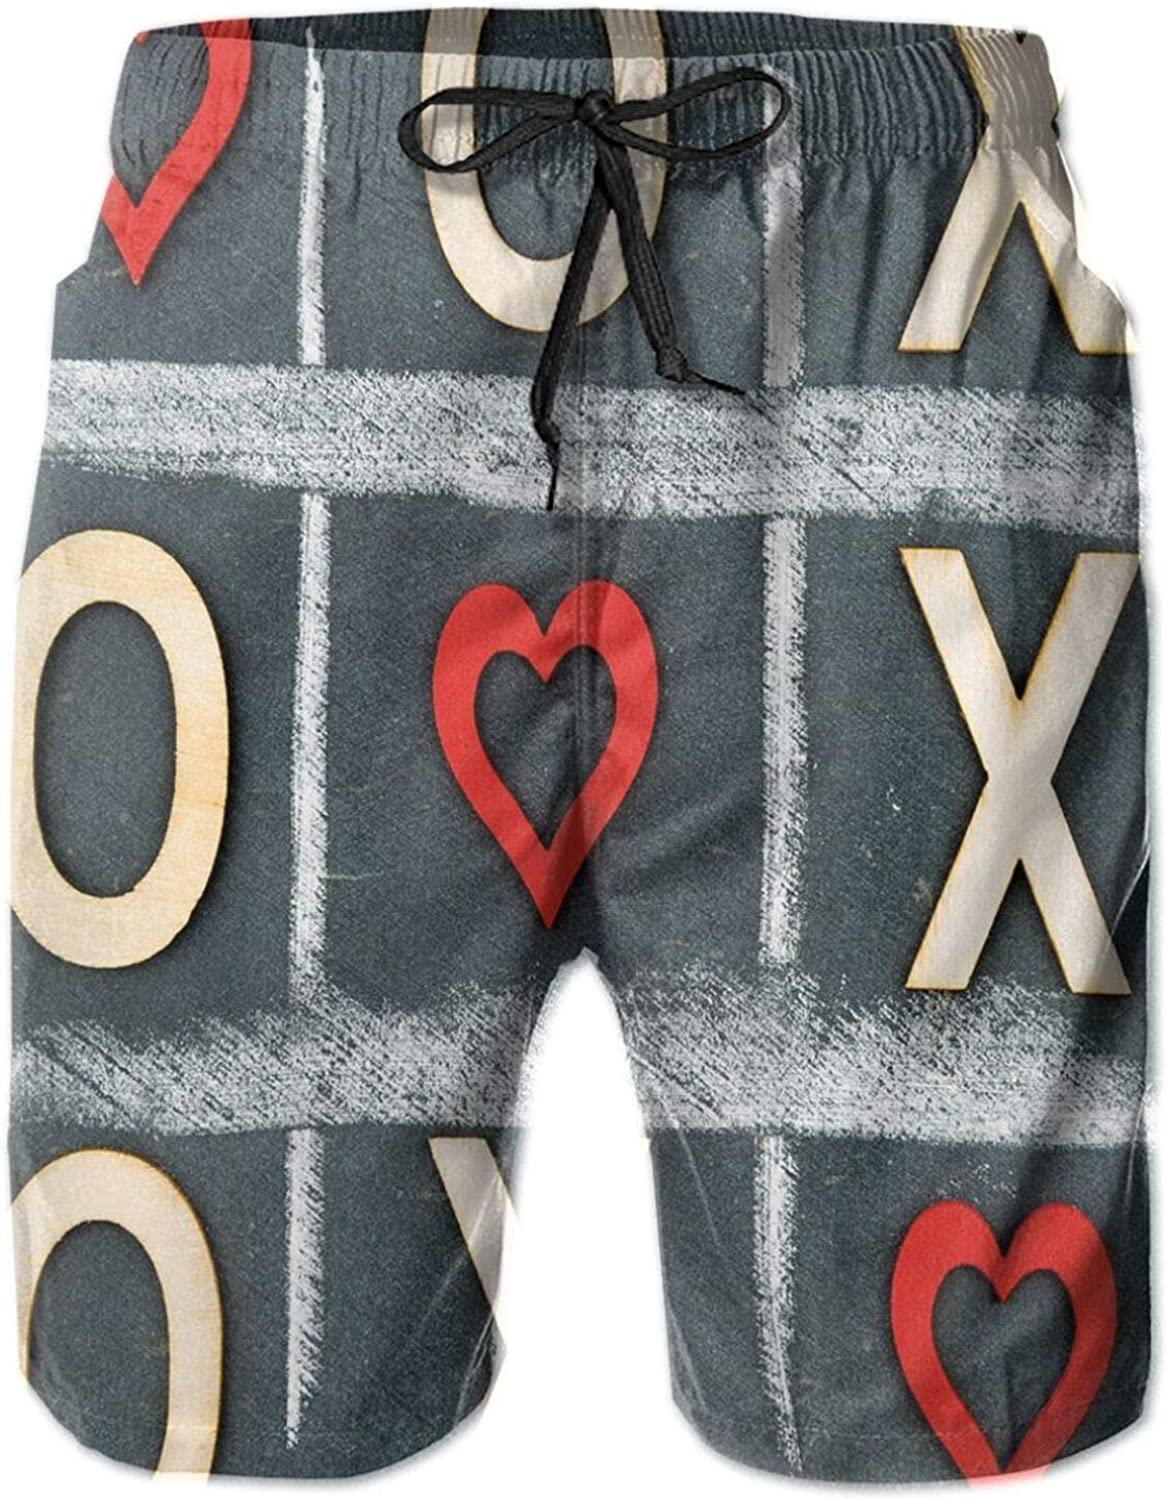 Vintage Style Blackboard with Hugs and Kisses Chalk Love Valentines Concept Mens Swim Shorts Casual Workout Short Pants Drawstring Beach Shorts,XXL